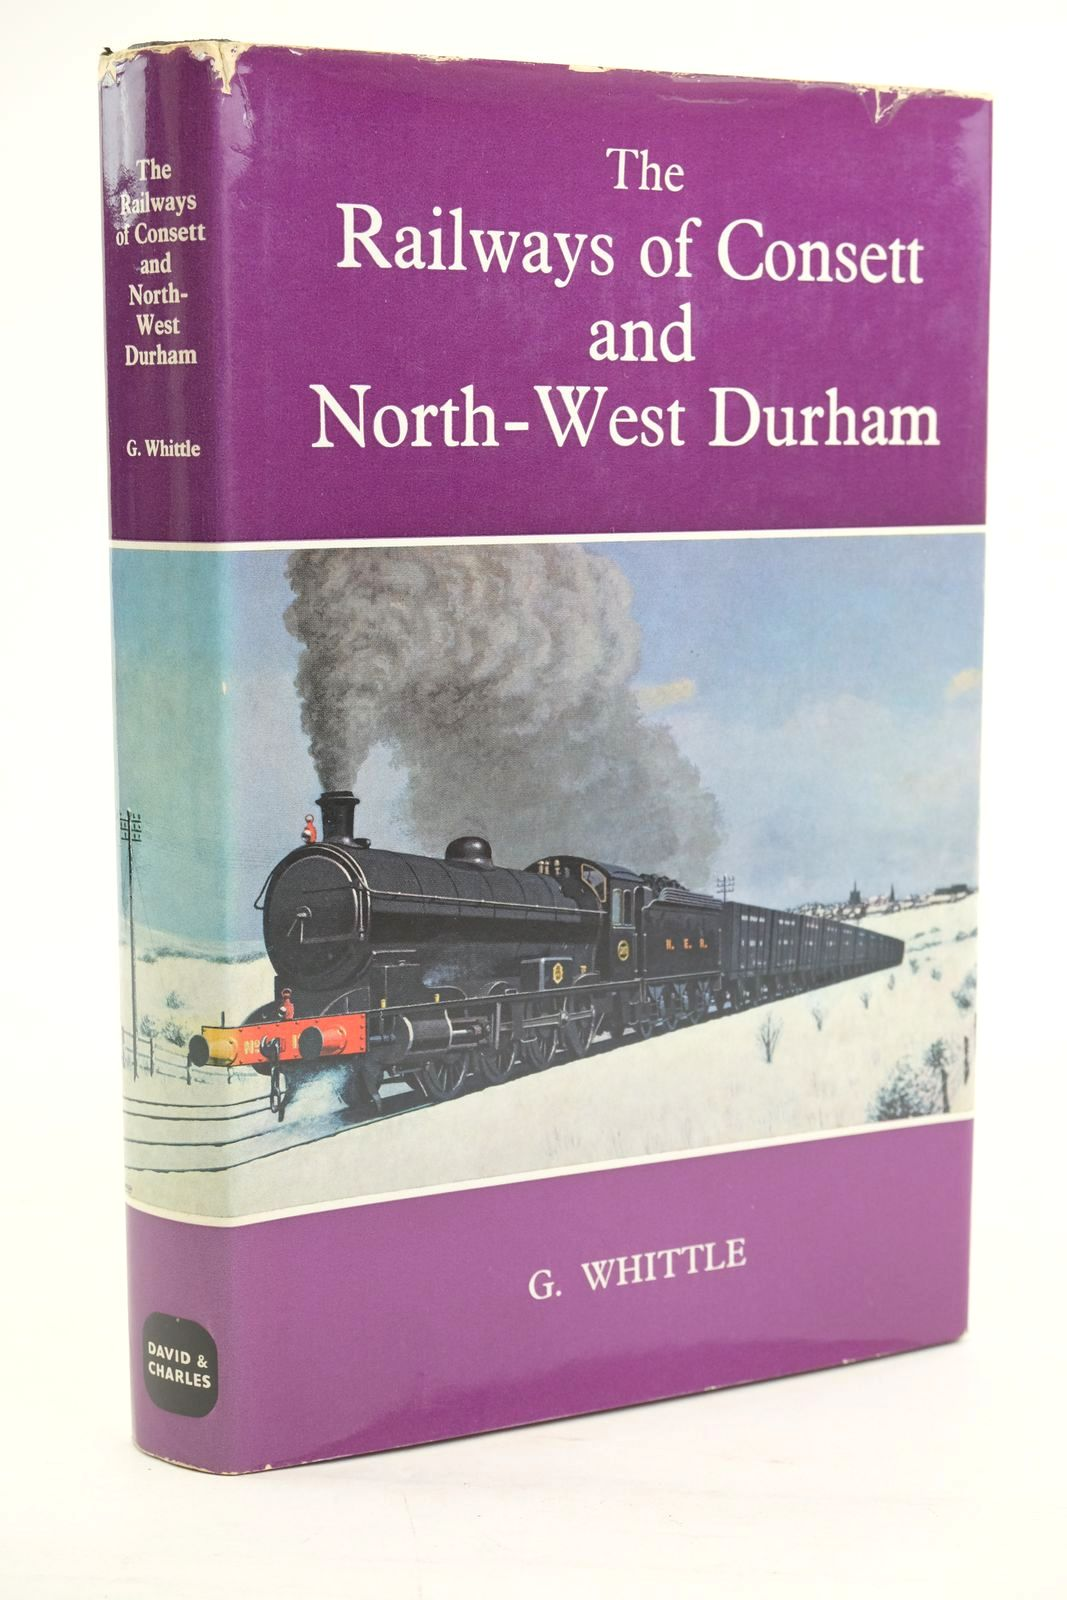 Photo of THE RAILWAYS OF CONSETT AND NORTH-WEST DURHAM written by Whittle, G. published by David & Charles (STOCK CODE: 1319913)  for sale by Stella & Rose's Books